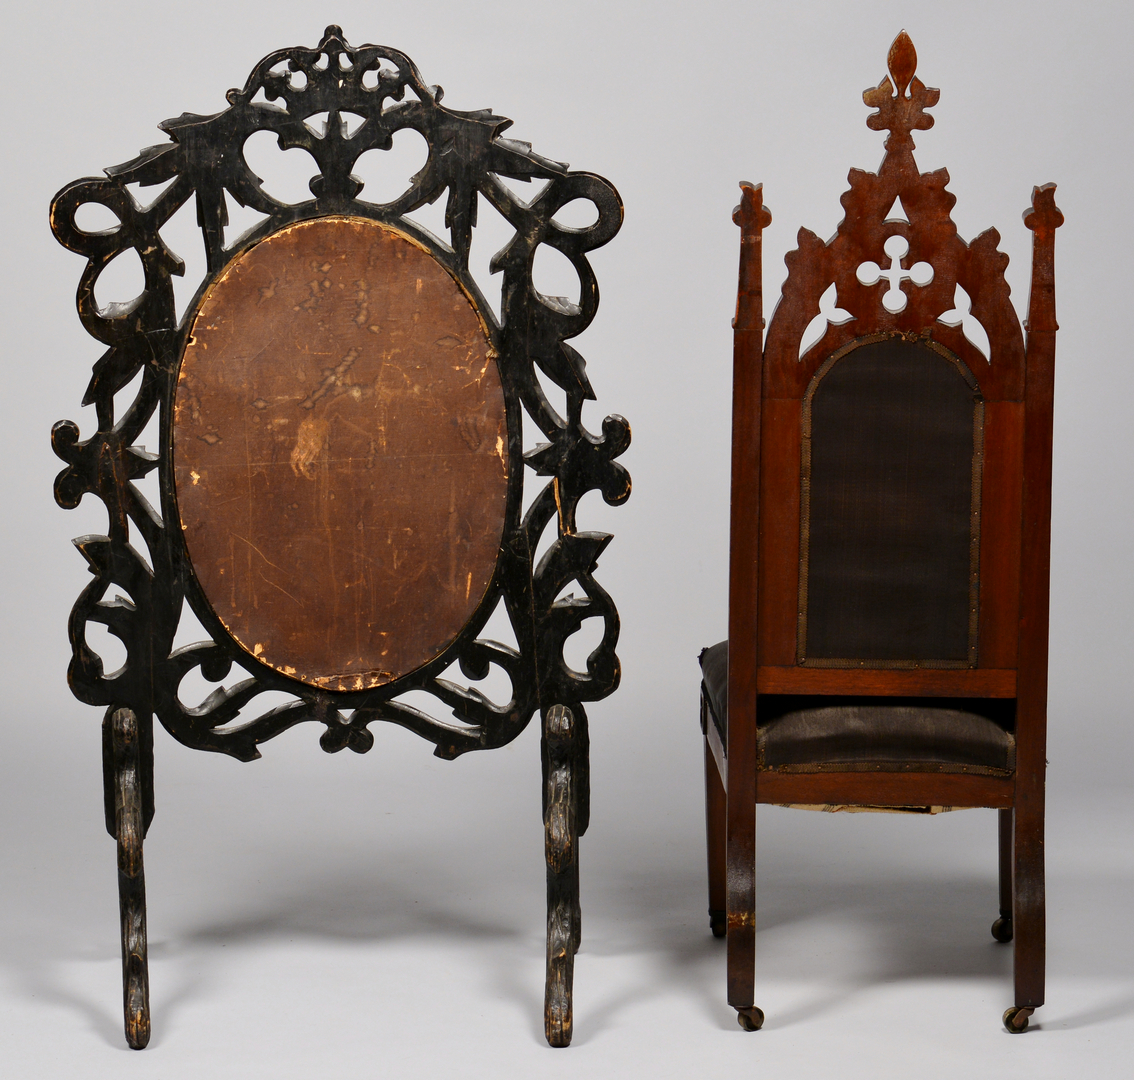 Gothic furniture chair - Gothic Furniture Chair 4